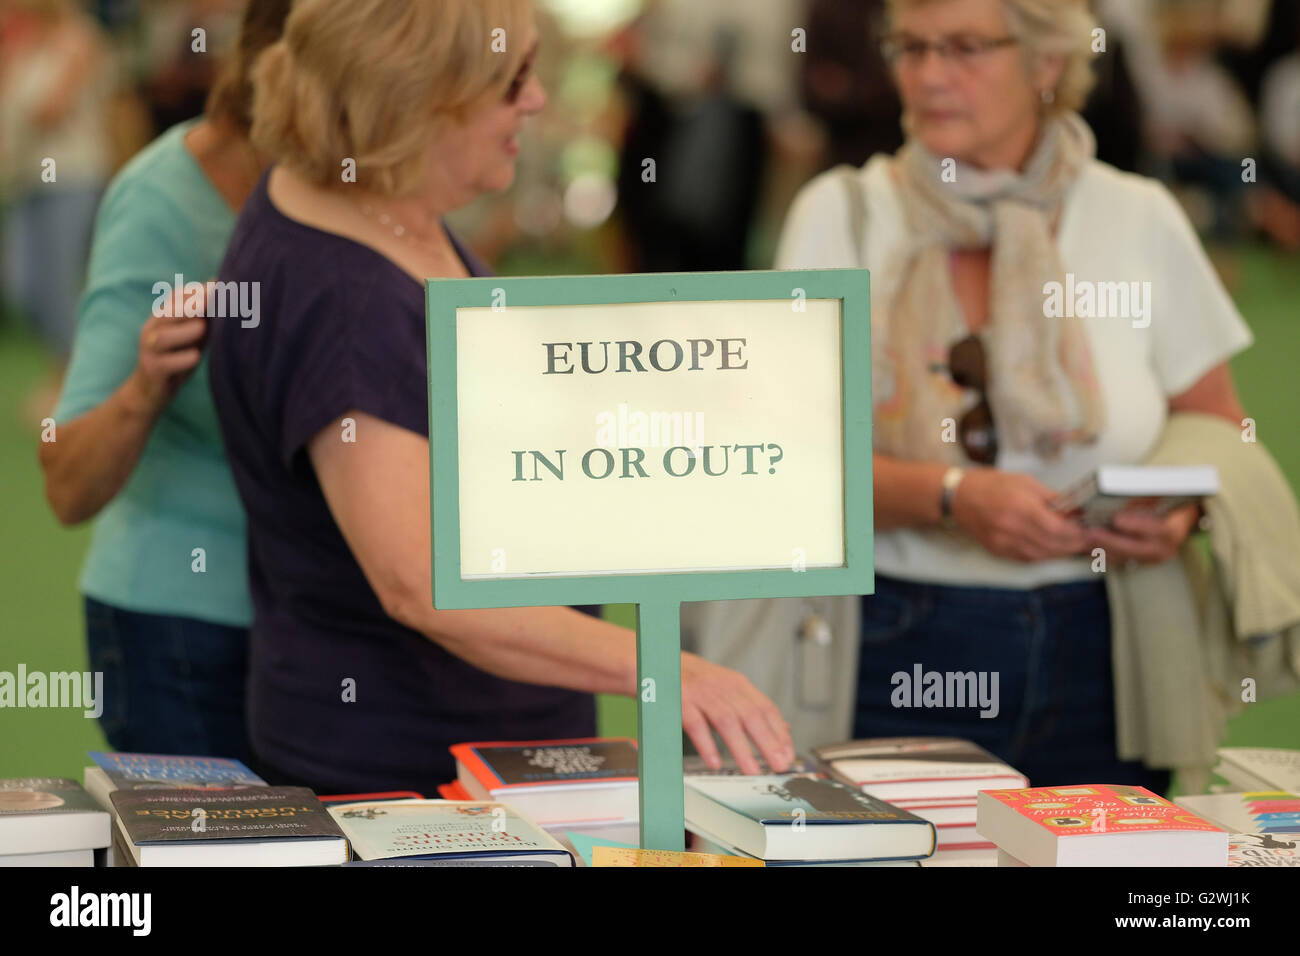 Hay Festival, Wales, UK - June 2016 -  Visitors to the book Festival browse the various EU Referendum related books - Stock Image